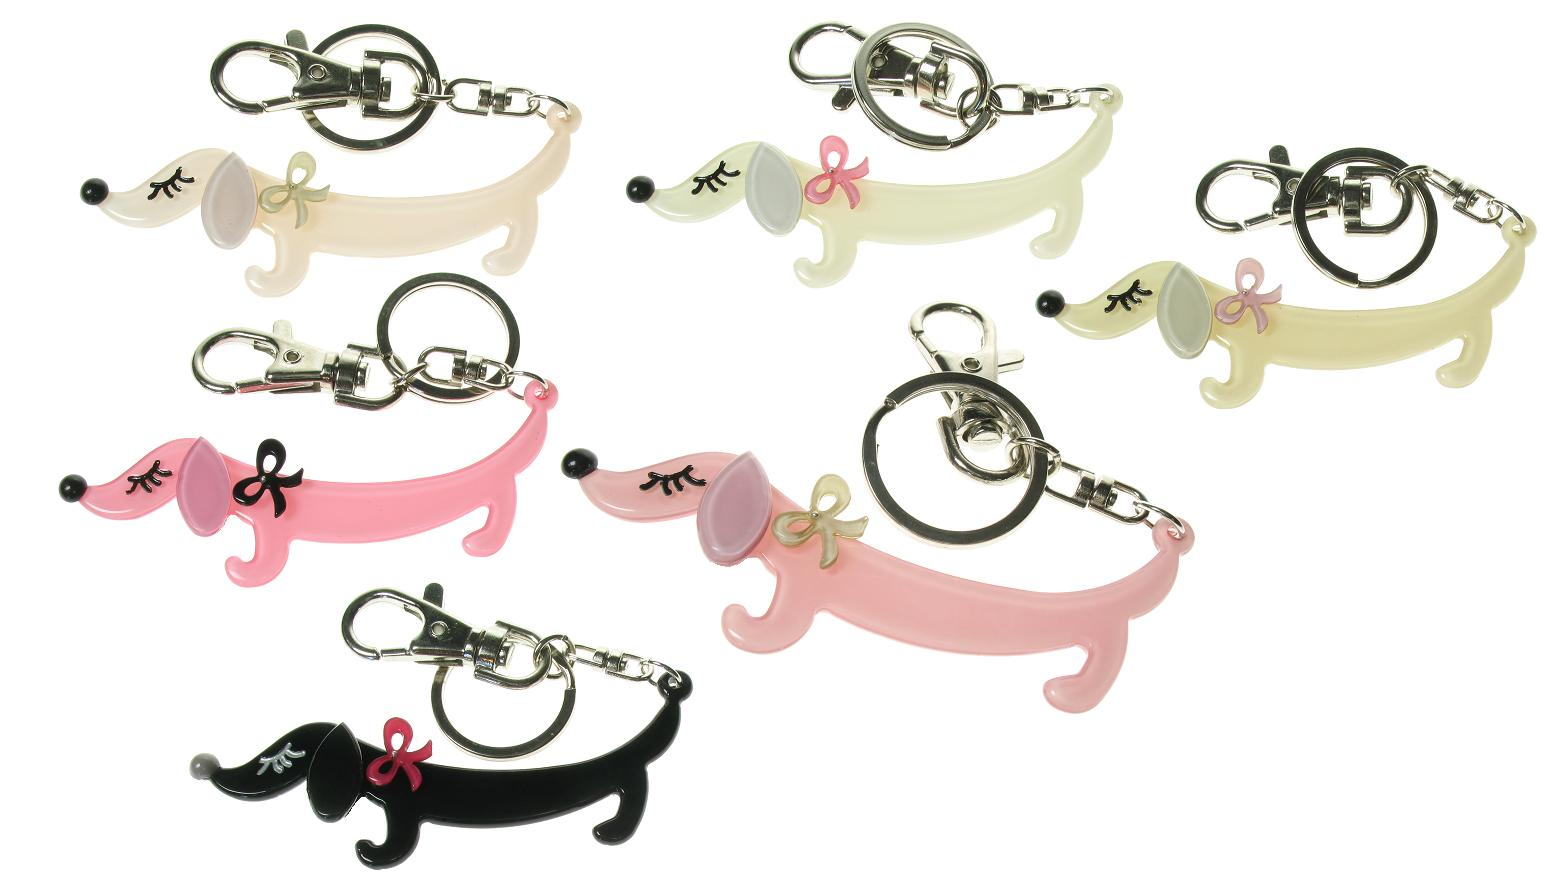 BIG BABY Sausage Dachshund Dog Keyring/Bag Charm